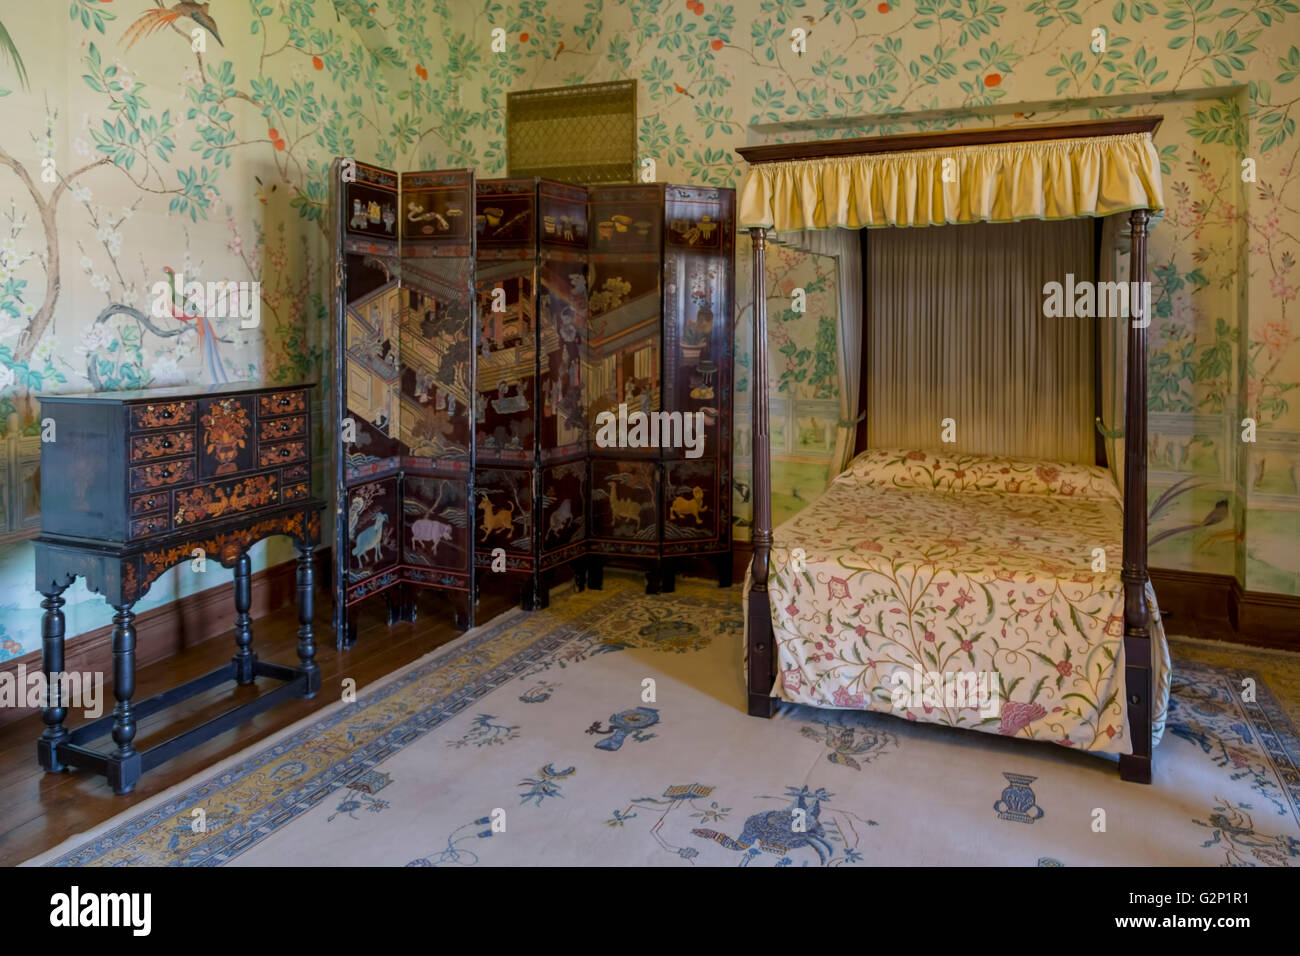 Chambre Chinoise | Letheron Chambres Et Tarifs